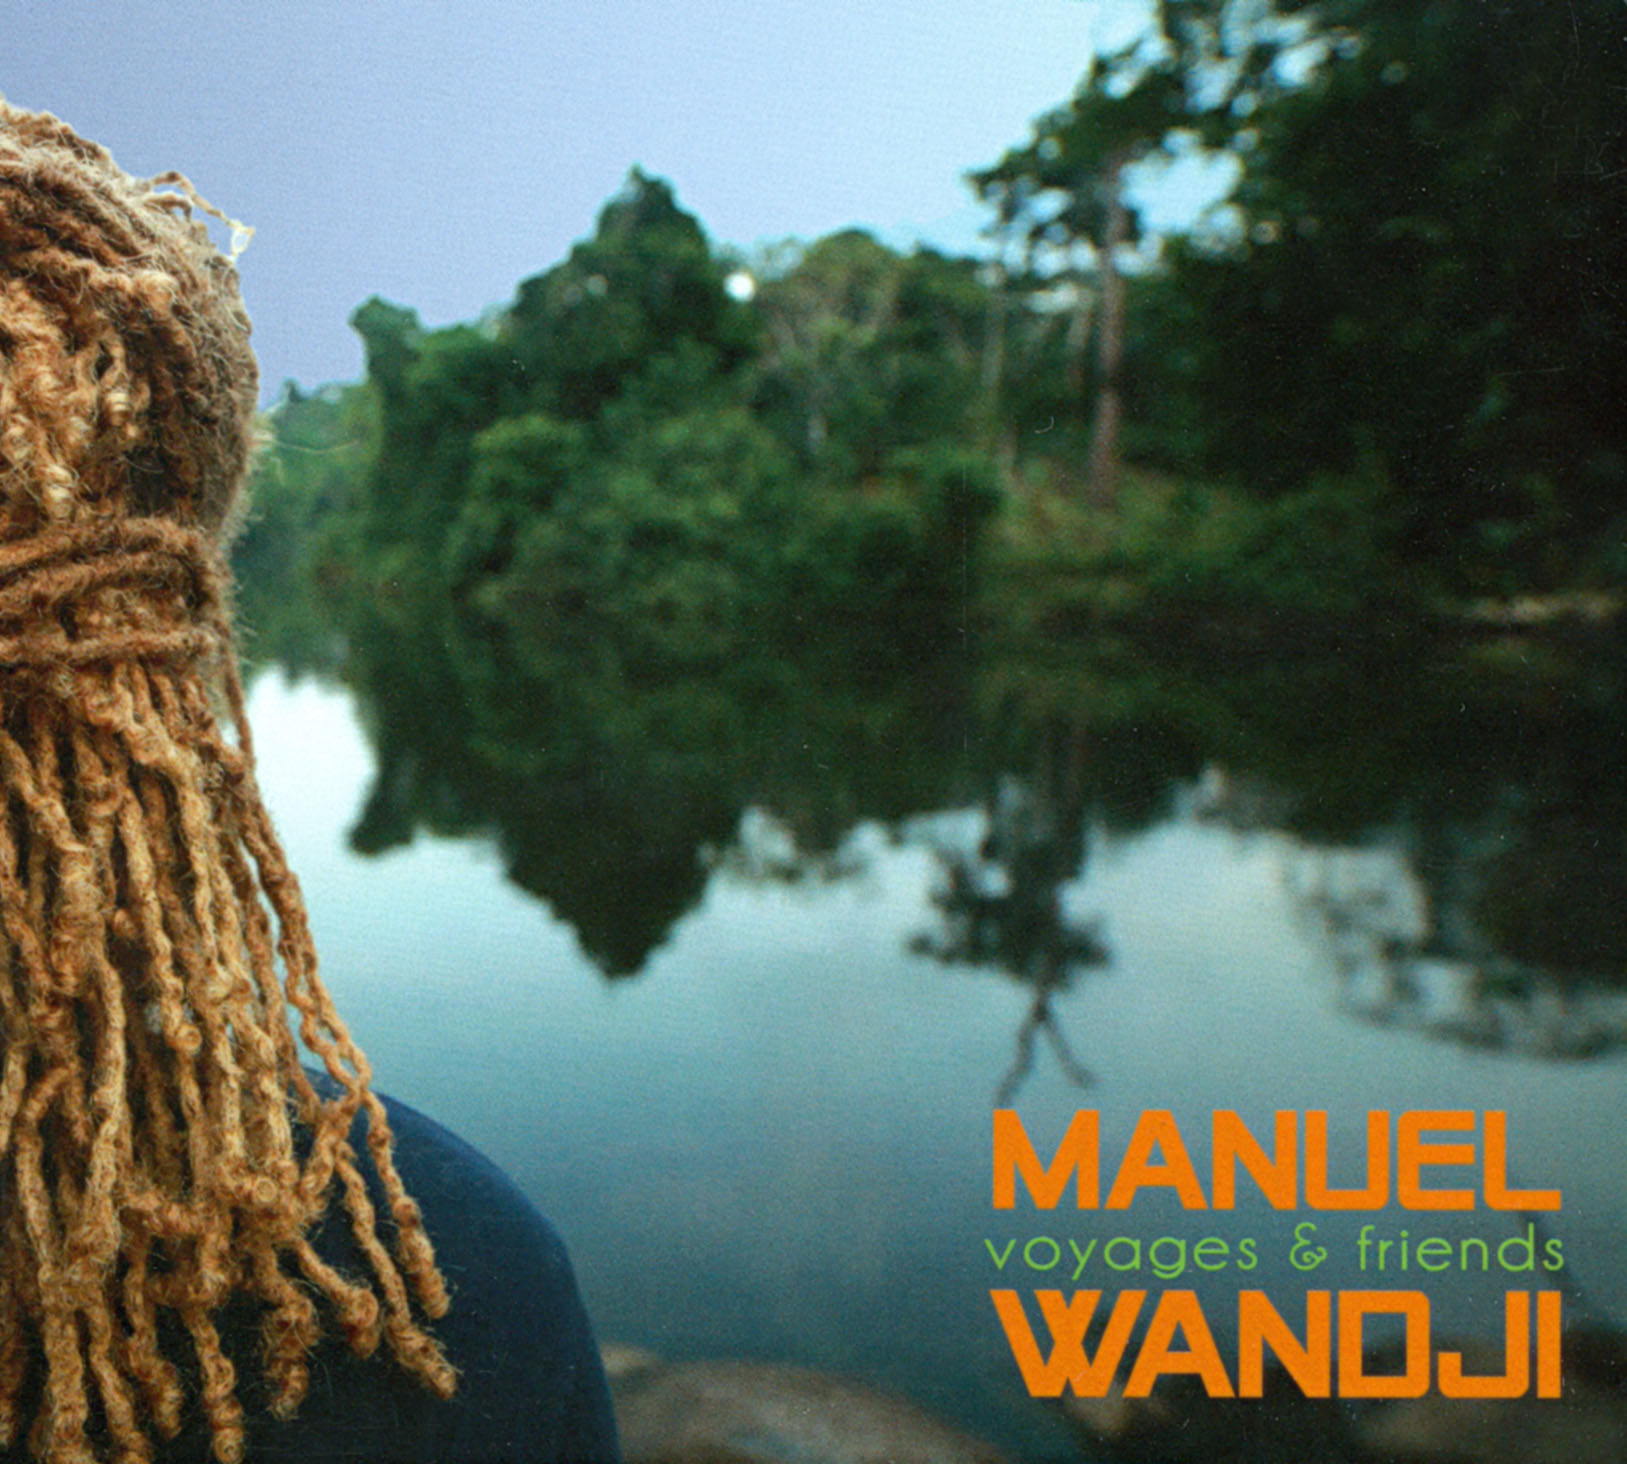 Manuel Wandji: Live at Morteau Theater in France in 2010